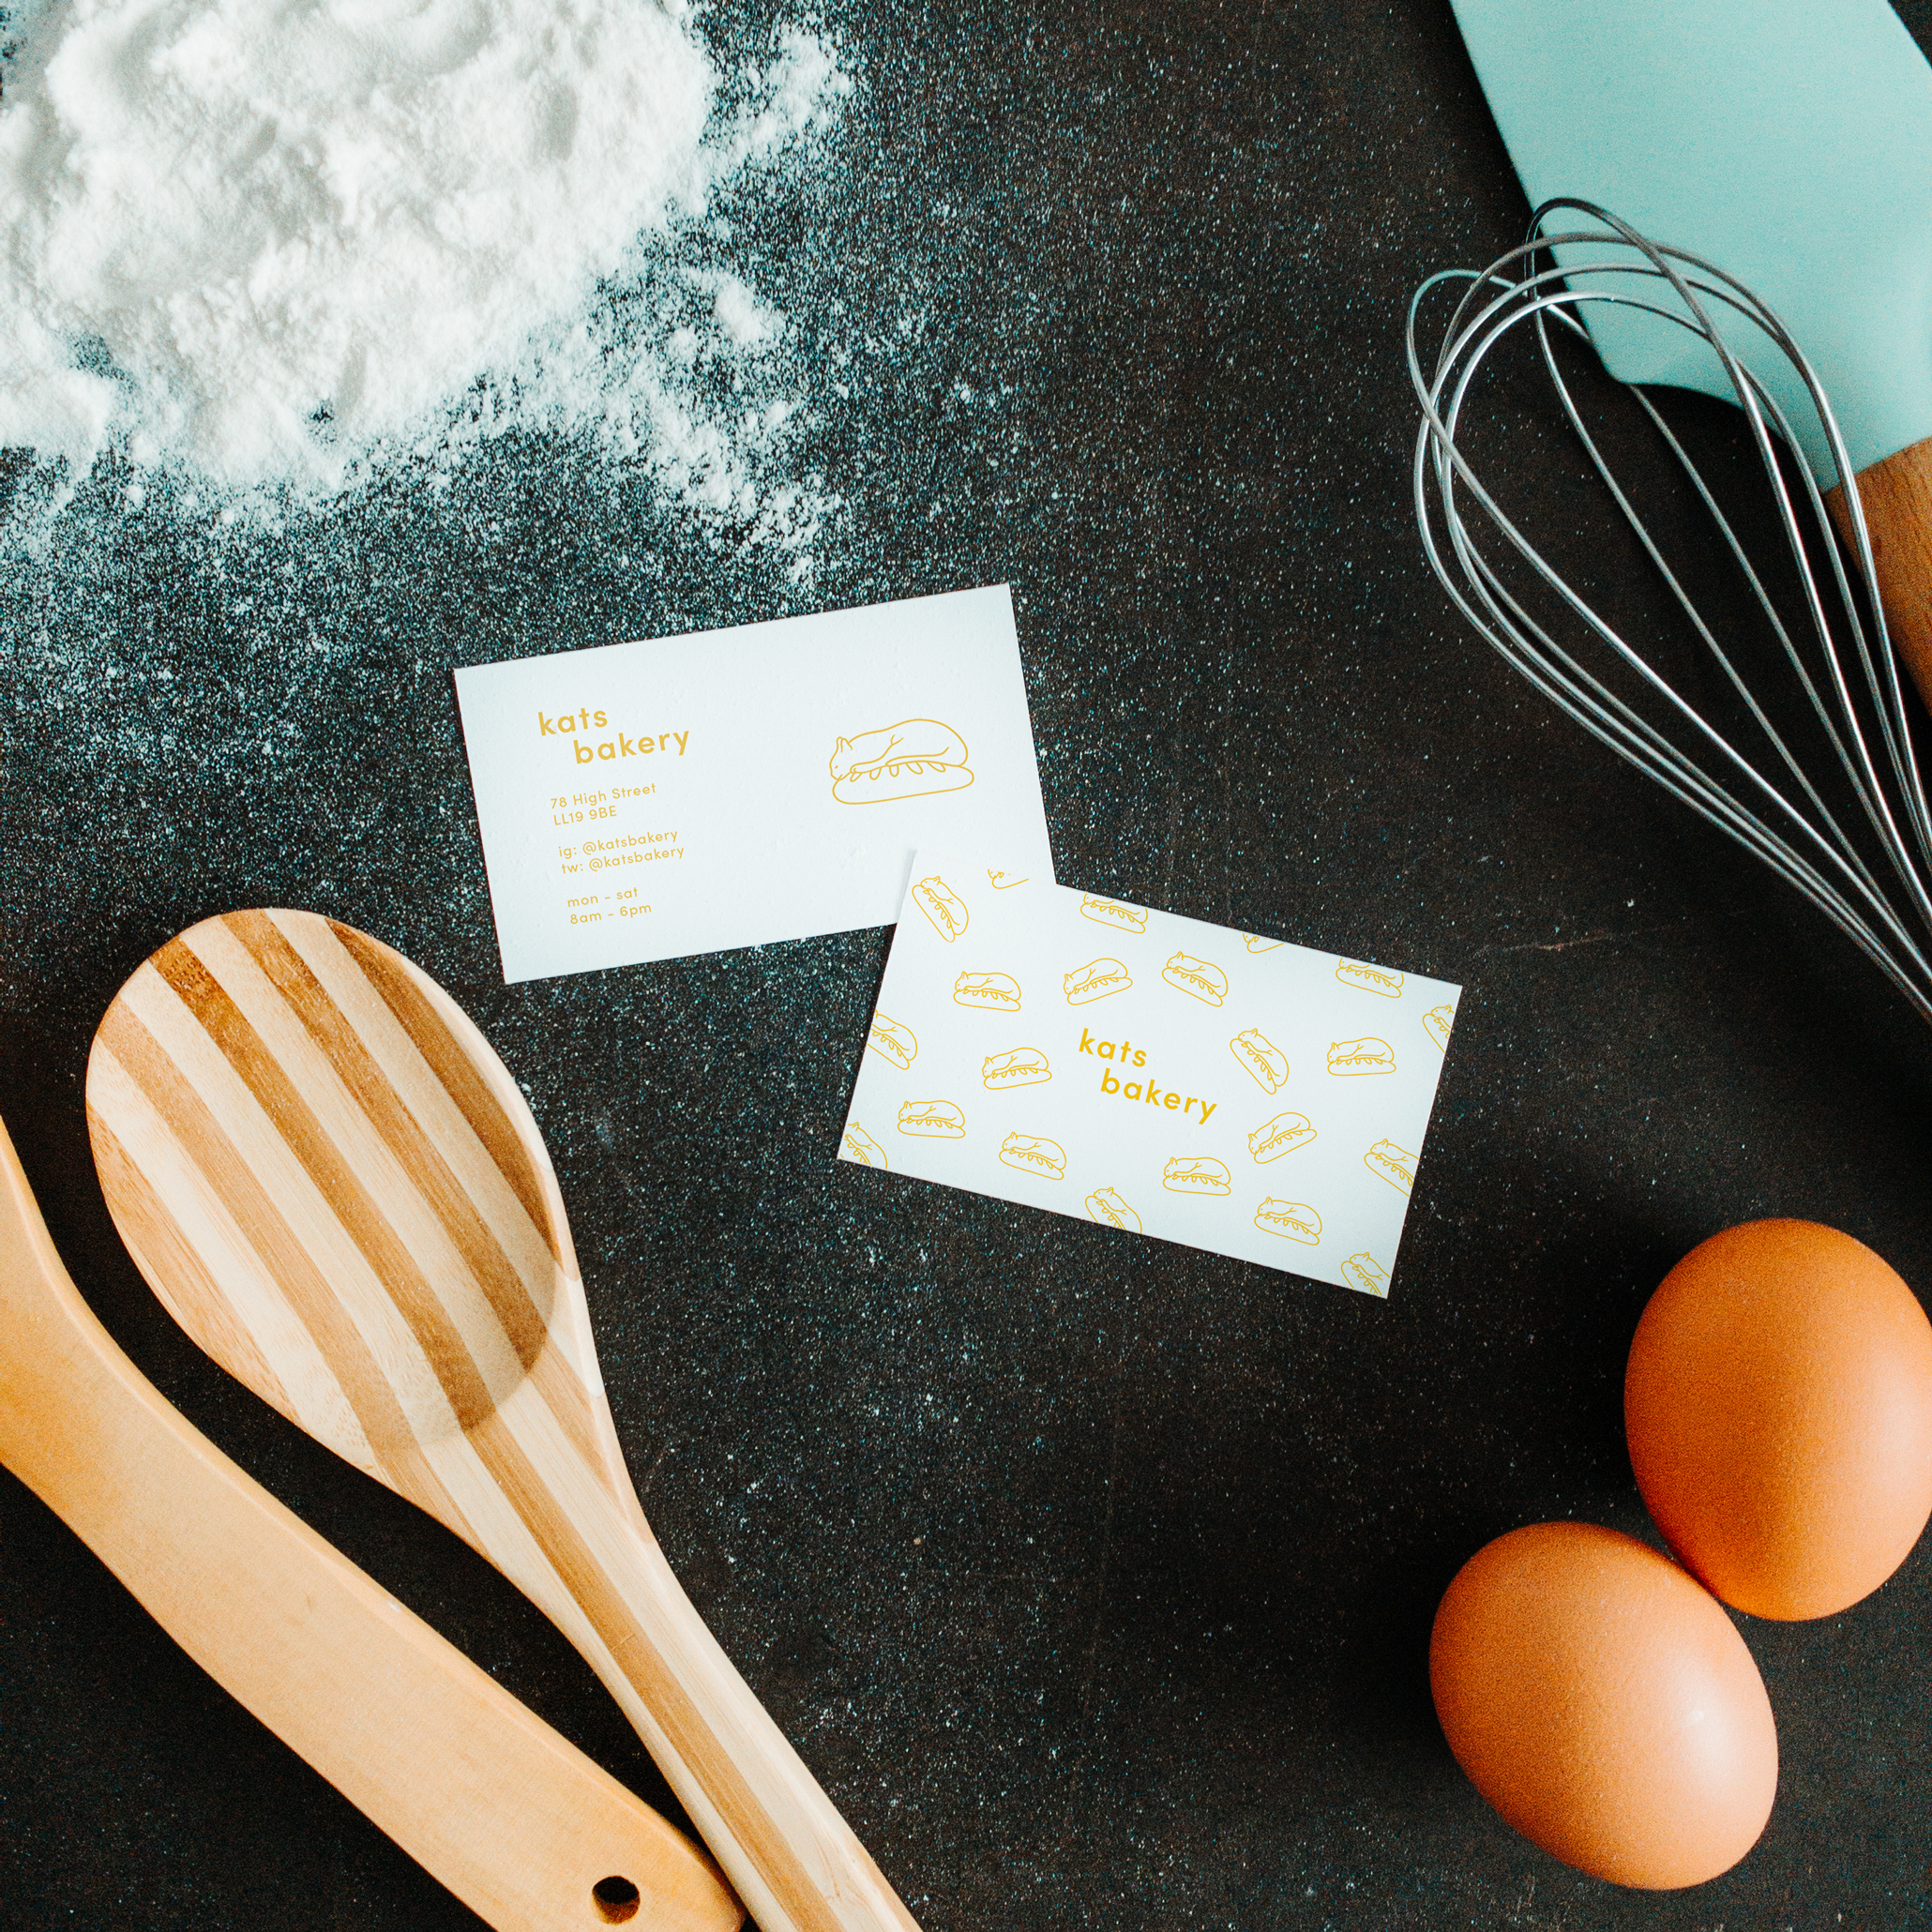 A messy bakery table with two business cards.